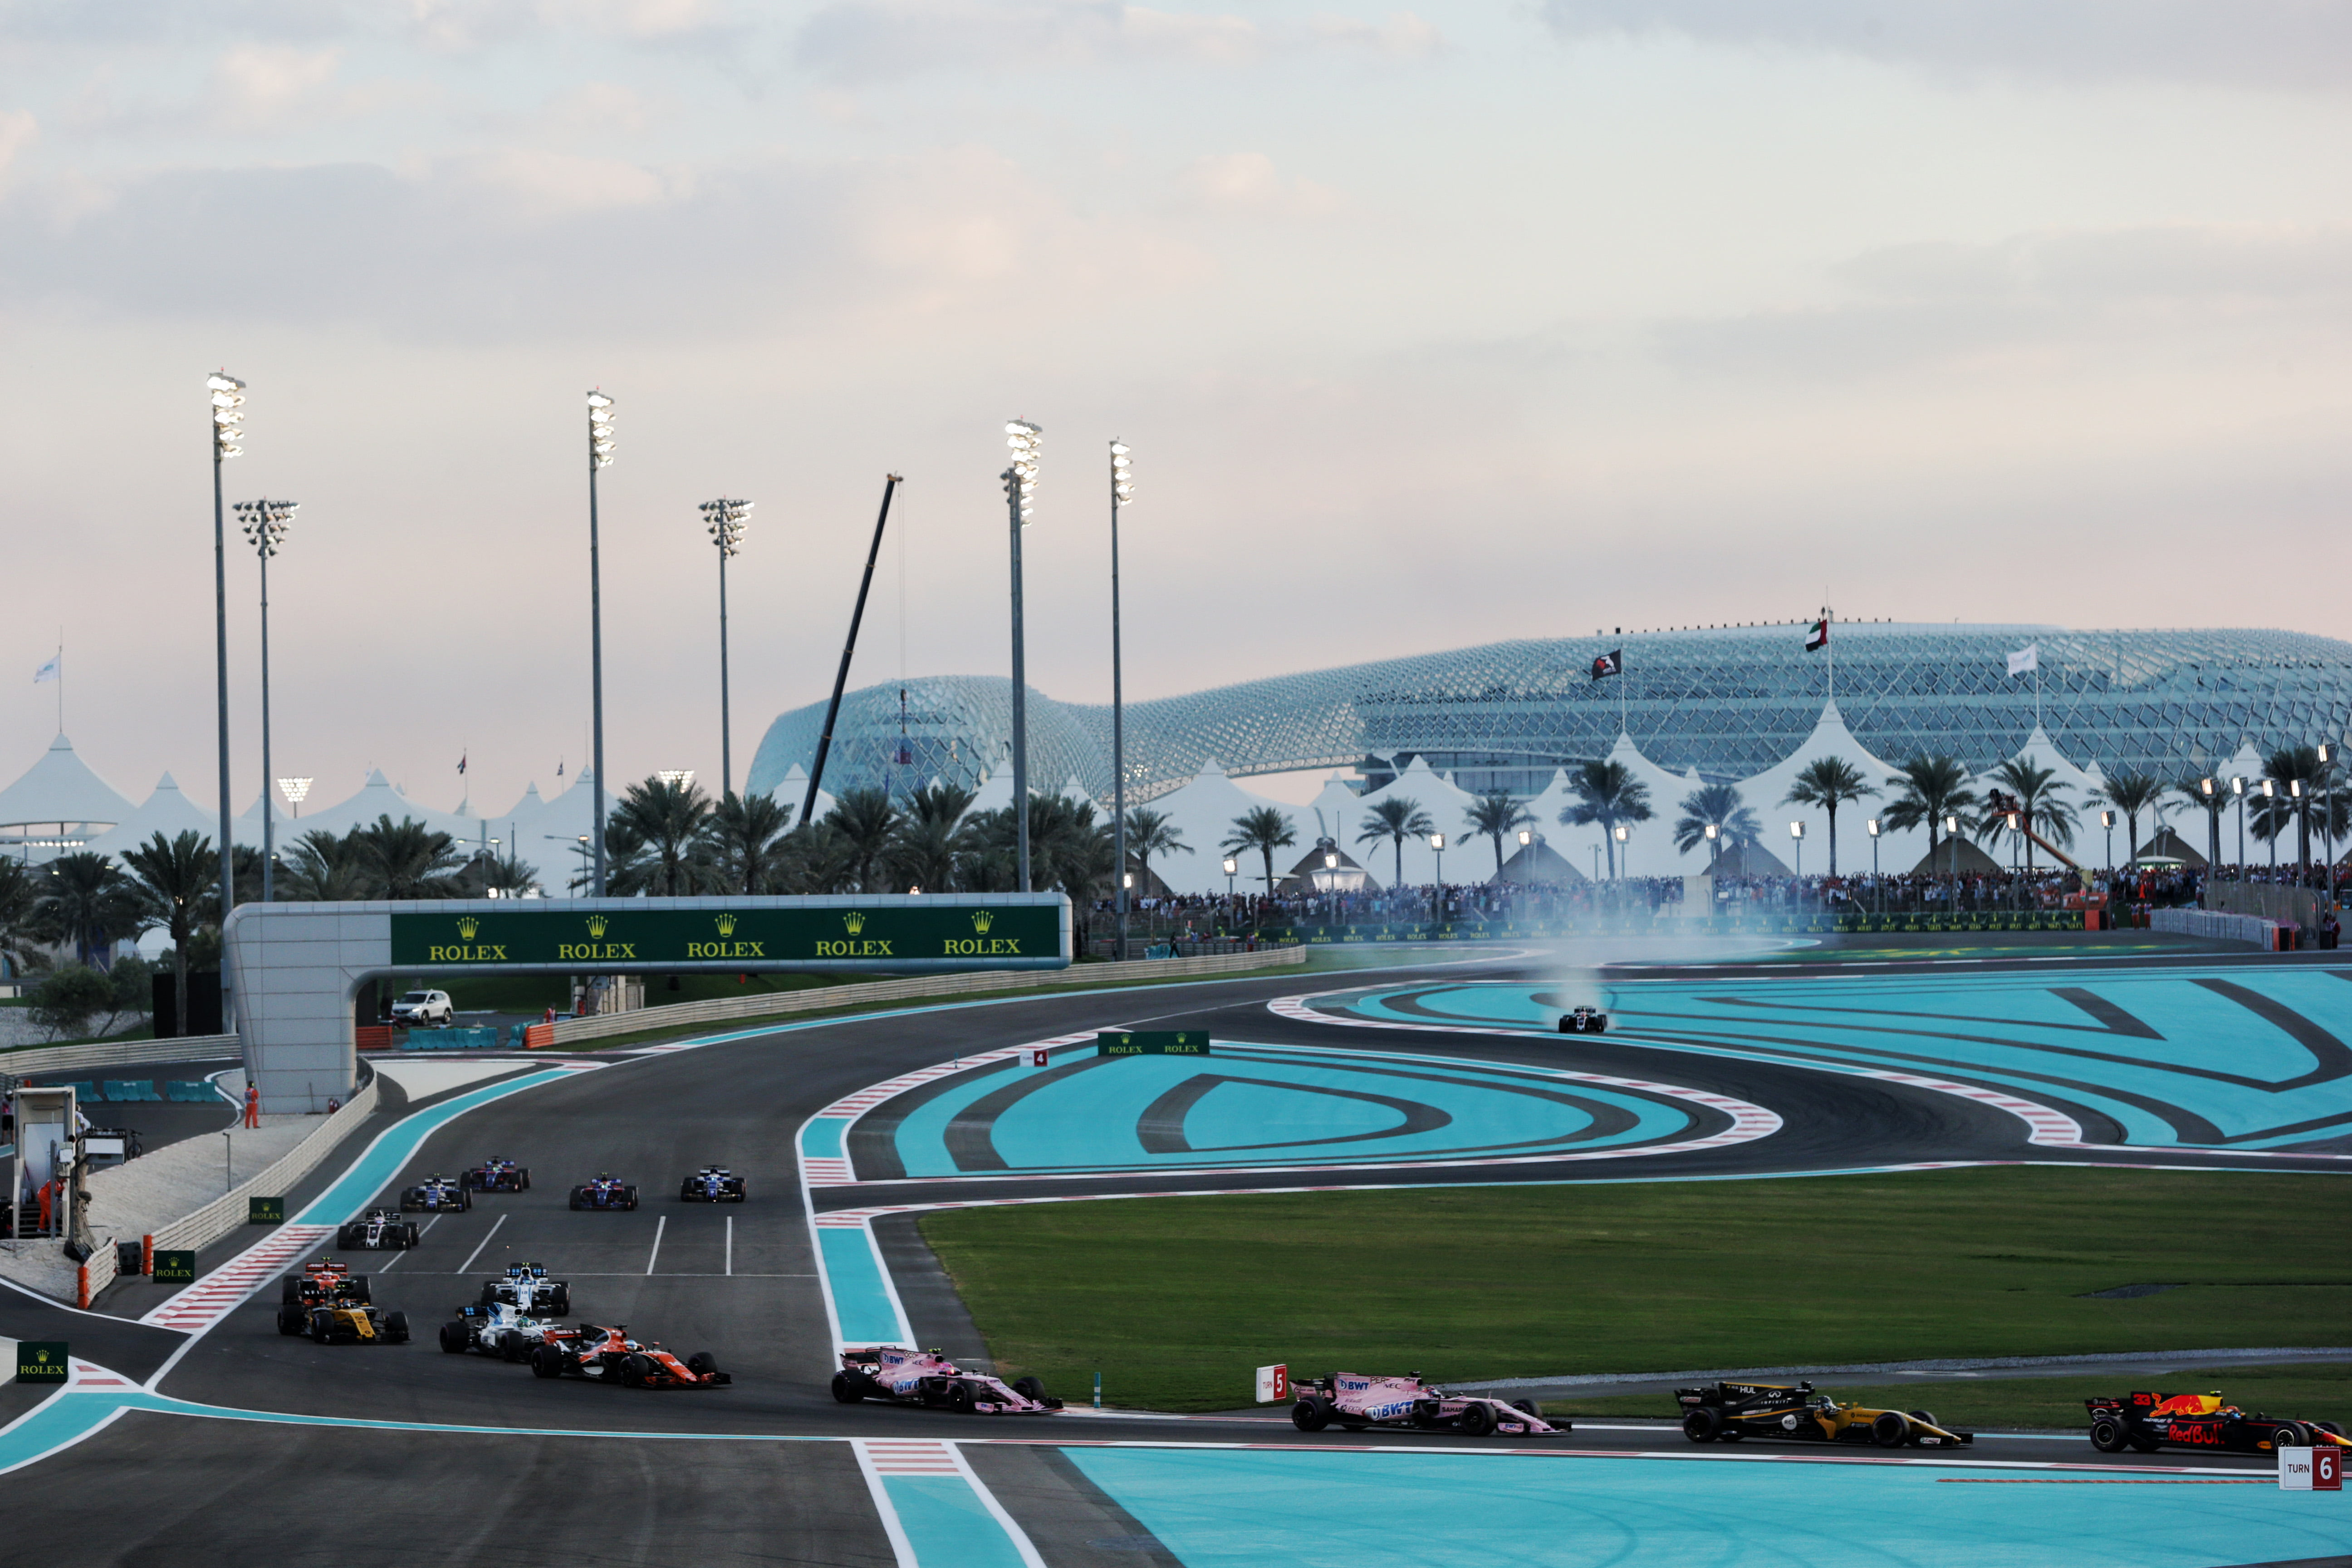 Formula One World Championship 2017, Round 20, Abu Dhabi Grand Prix, Abu Dhabi, United Arab Emirates, Sunday 26 November 2017 – The start of the race.